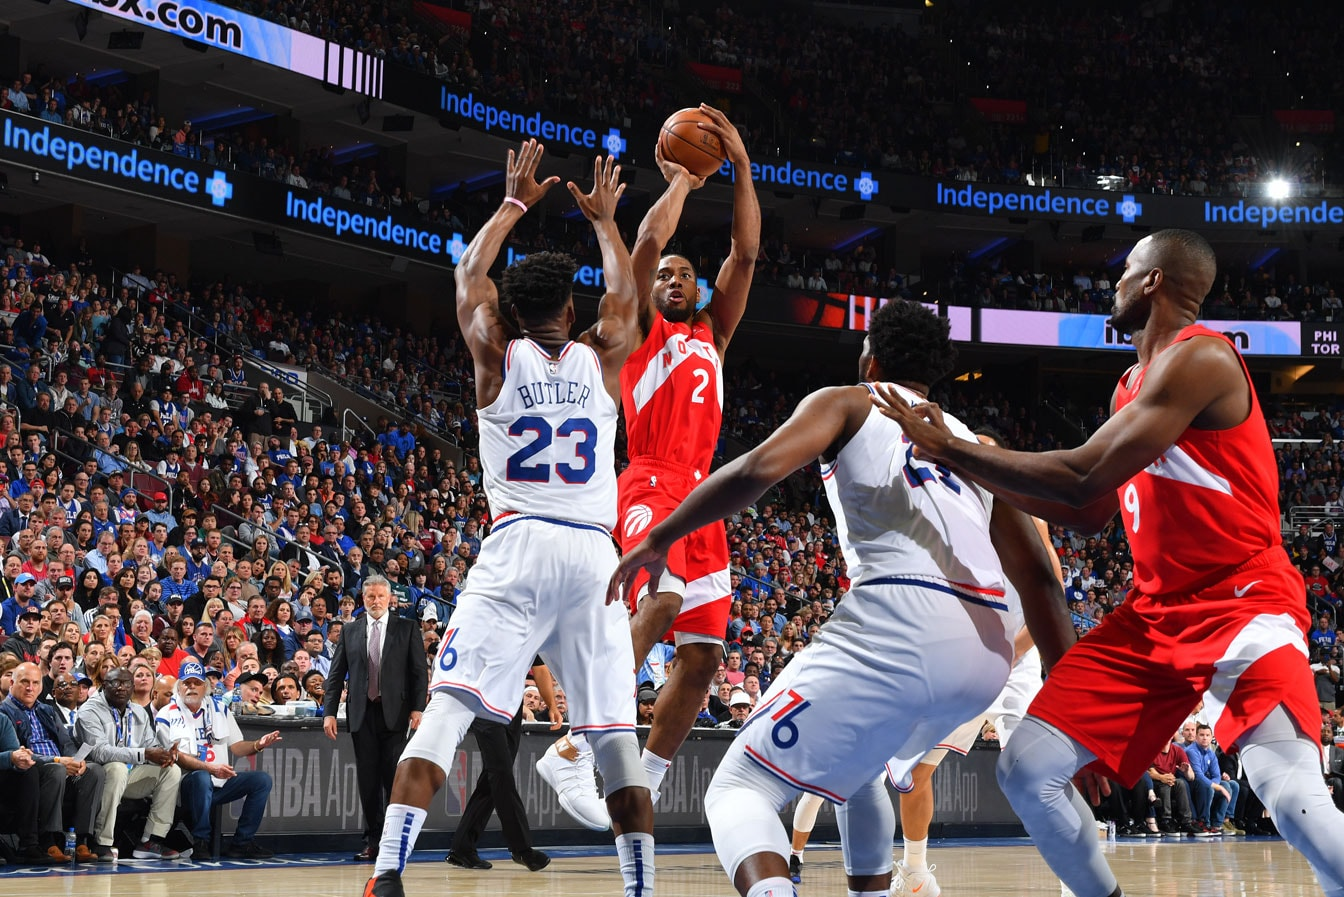 Kawhi Leonard #2 of the Toronto Raptors shoots the ball against the Philadelphia 76ers during Game Six of the Eastern Conference Semifinals on May 9, 2019 at the Wells Fargo Center in Philadelphia, Pennsylvania.